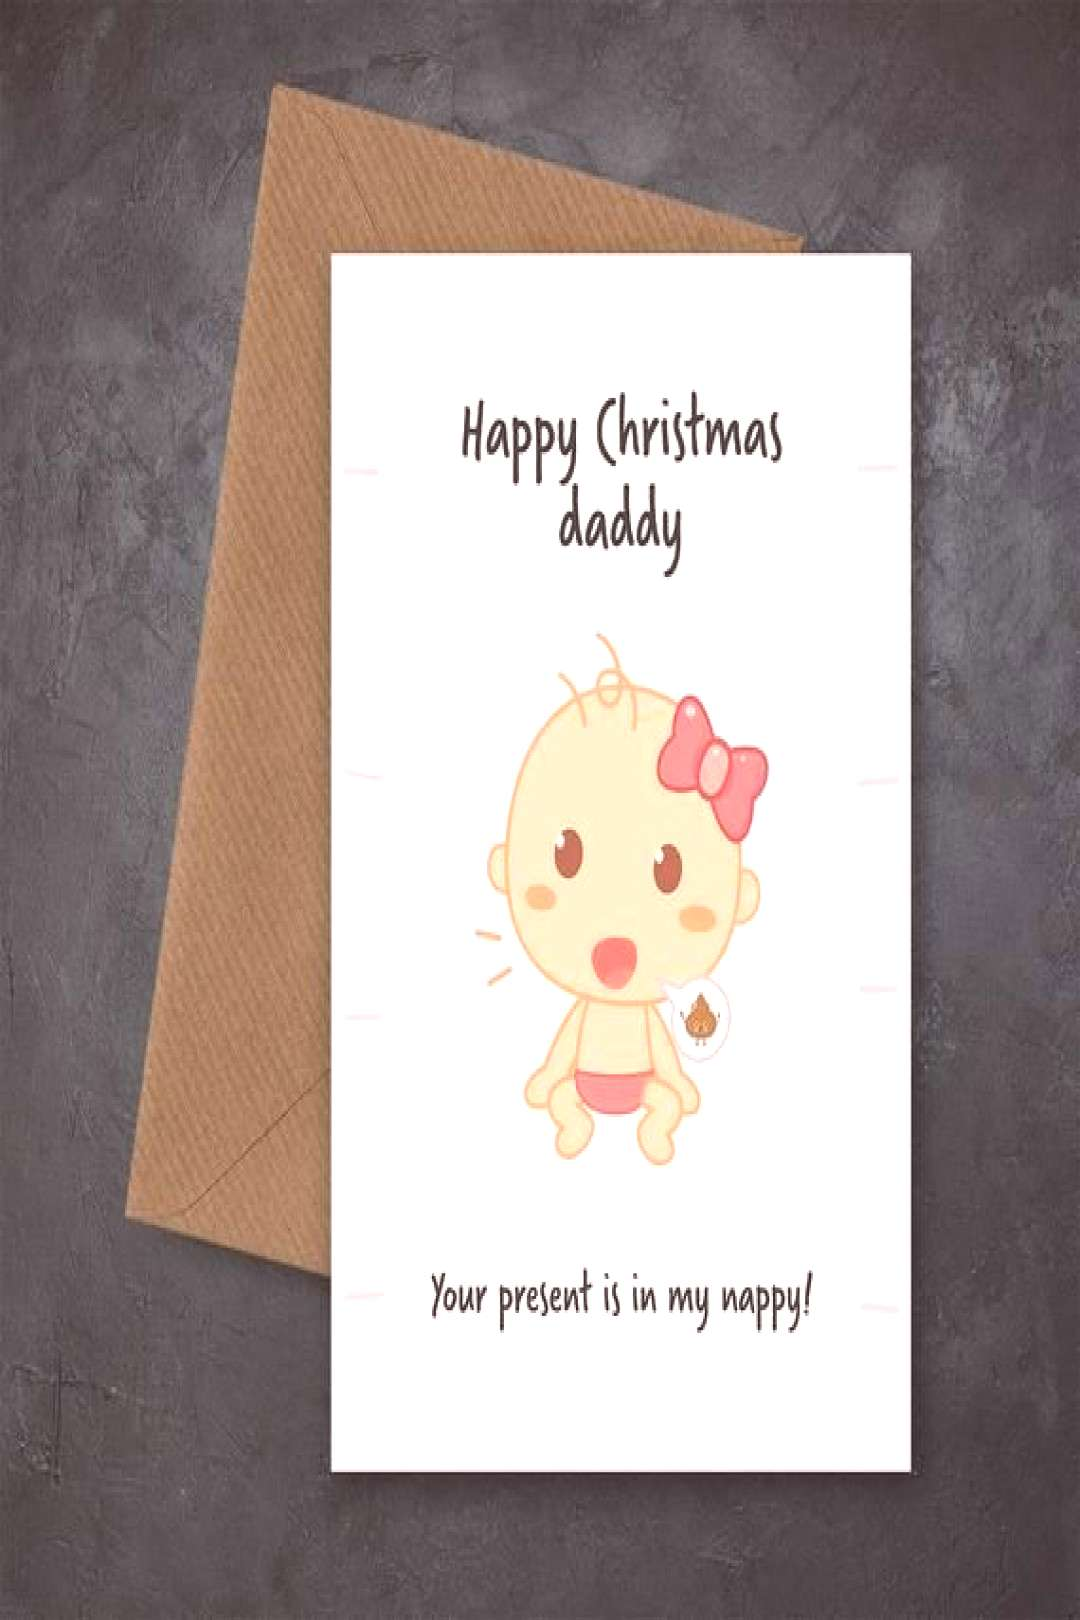 Funny Christmas Card for Dad - Daddy Christmas Cards from Daughter - Your present in my nappy - Fun